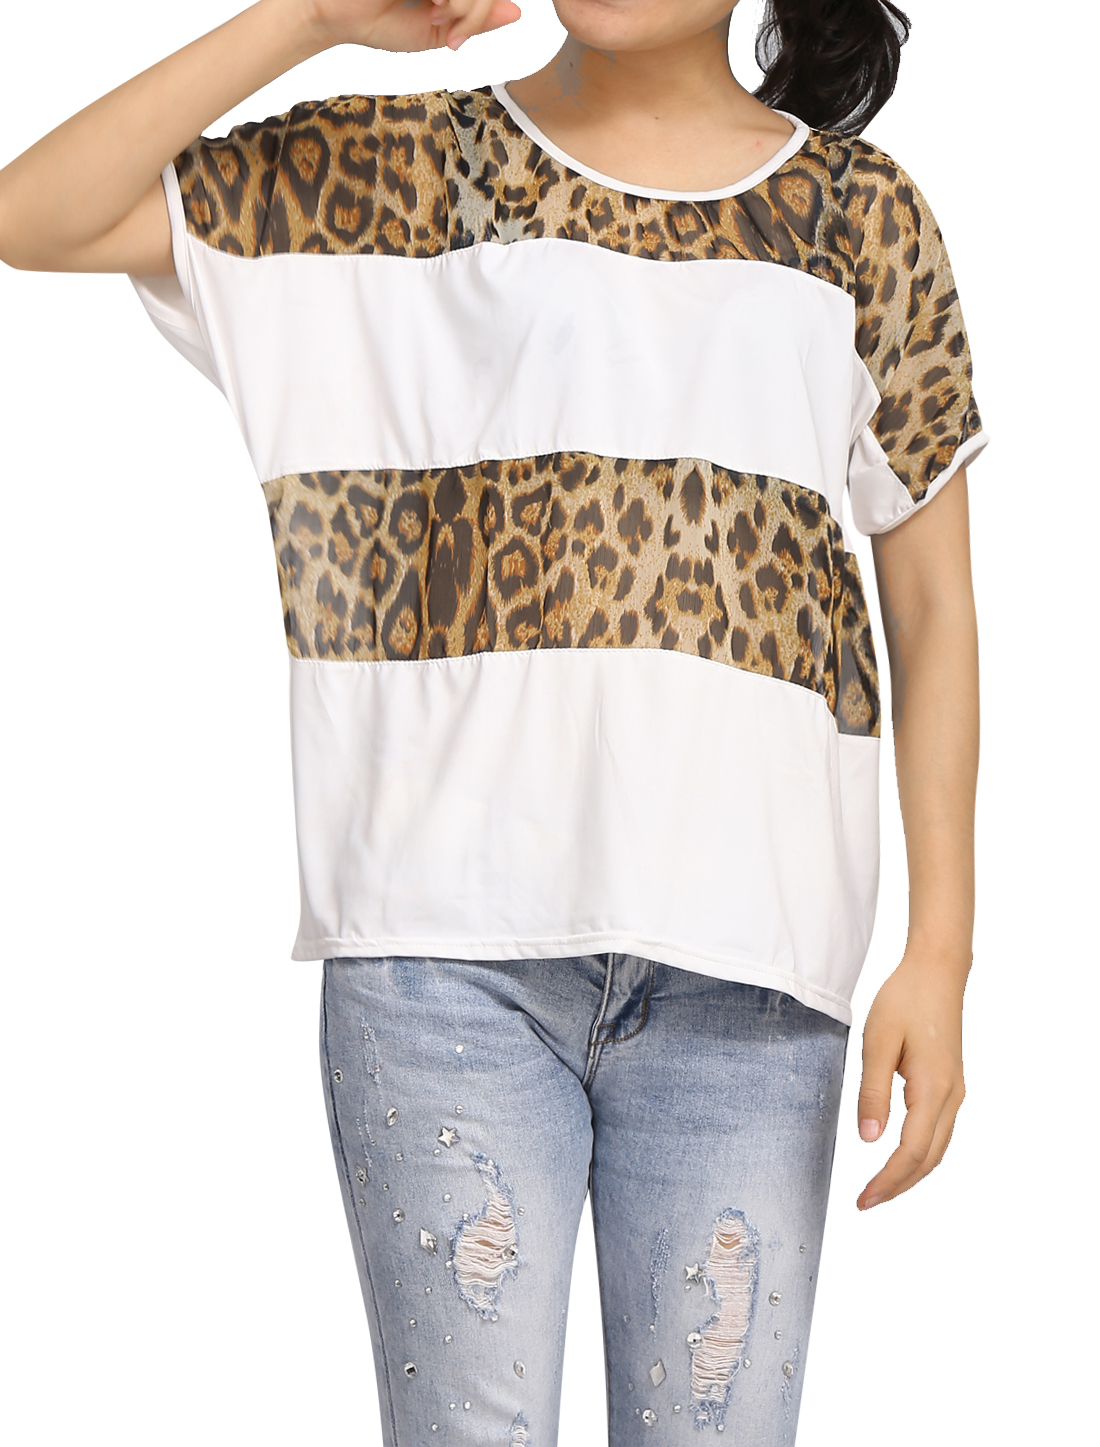 Women Leopard Print Chiffon Decor Short Bat Sleeve White Shirt S